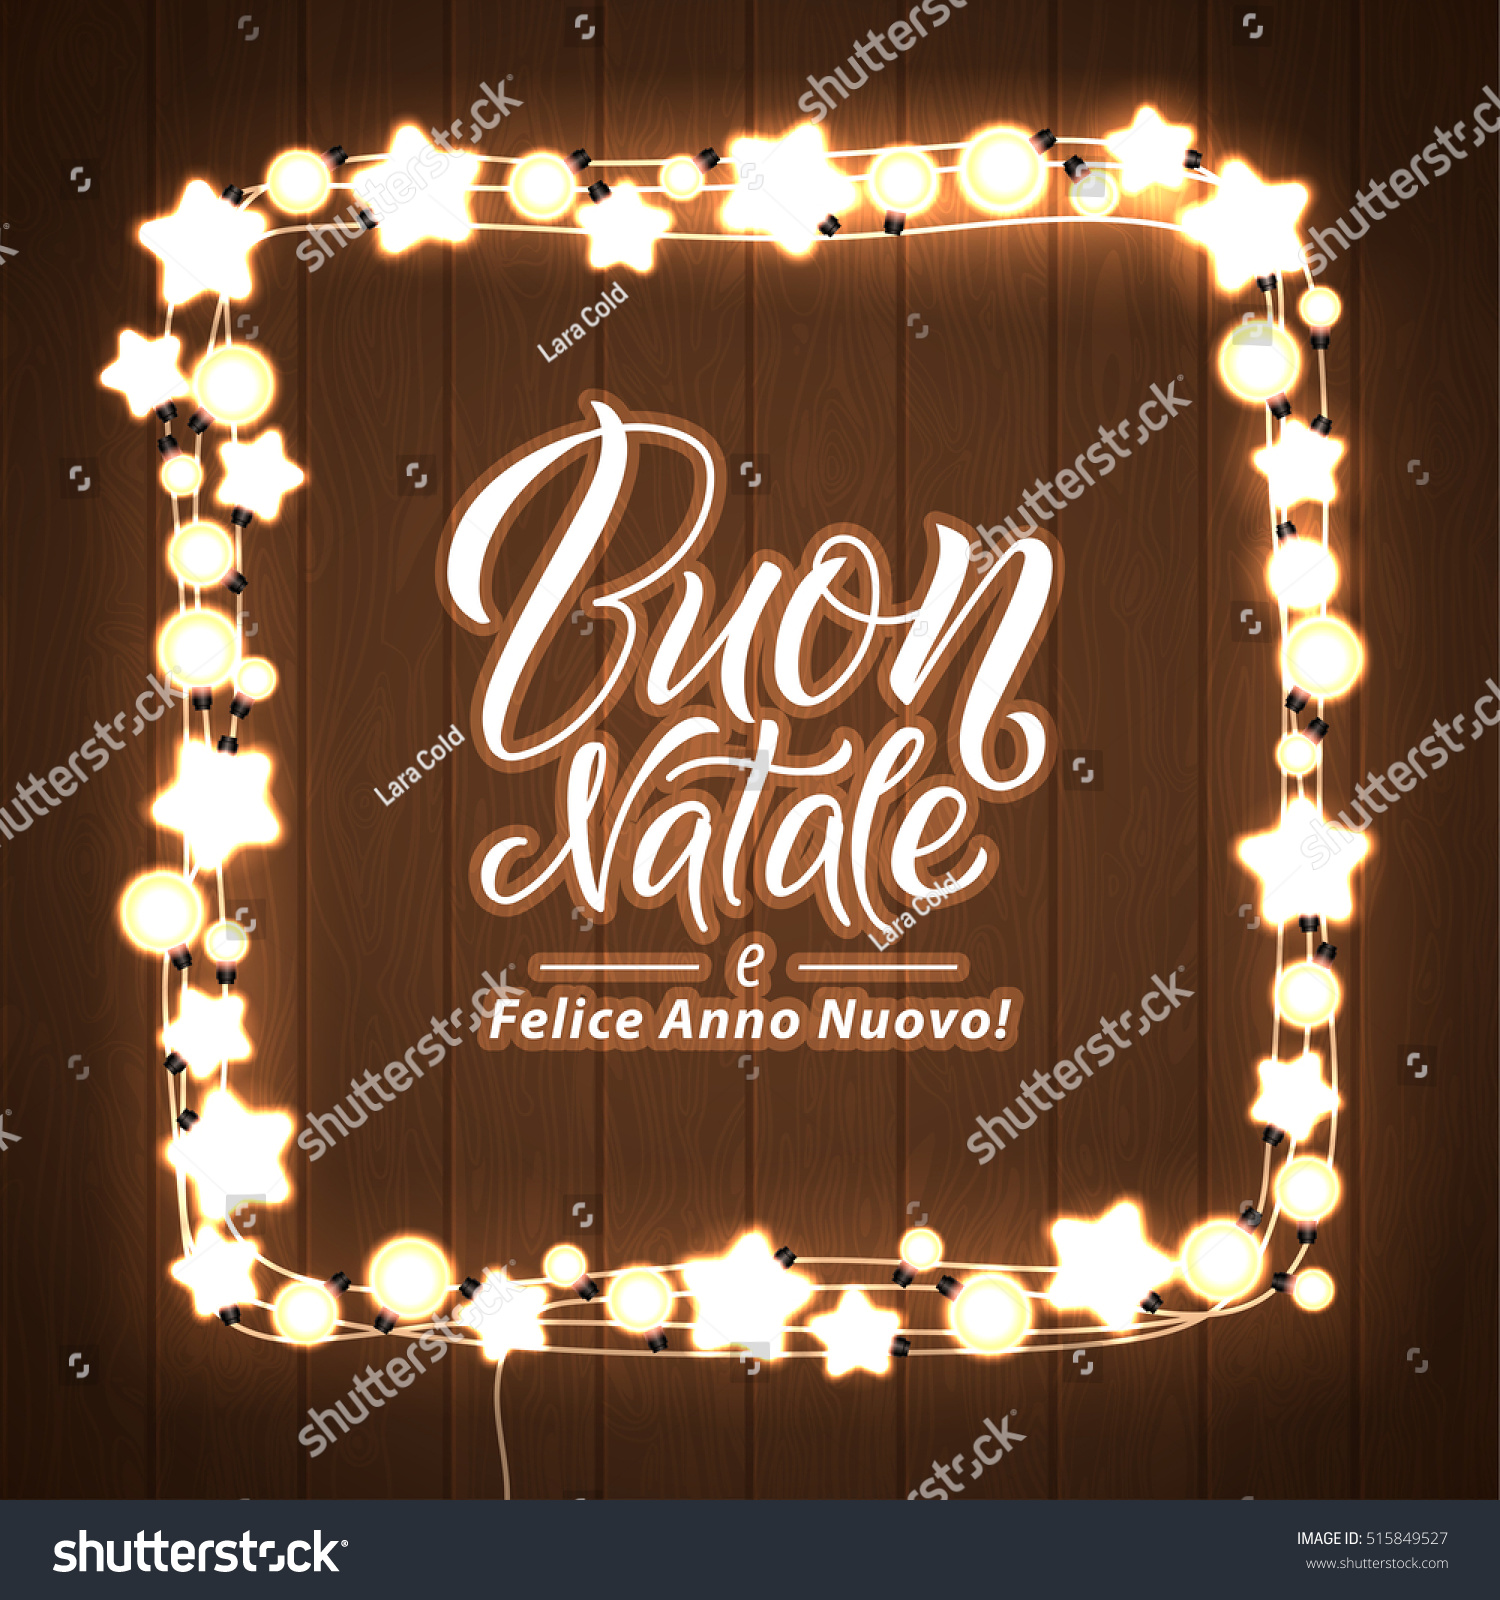 Merry christmas happy new year italian stock vector 515849527 merry christmas and happy new year italian language glowing christmas lights wreath for xmas kristyandbryce Gallery